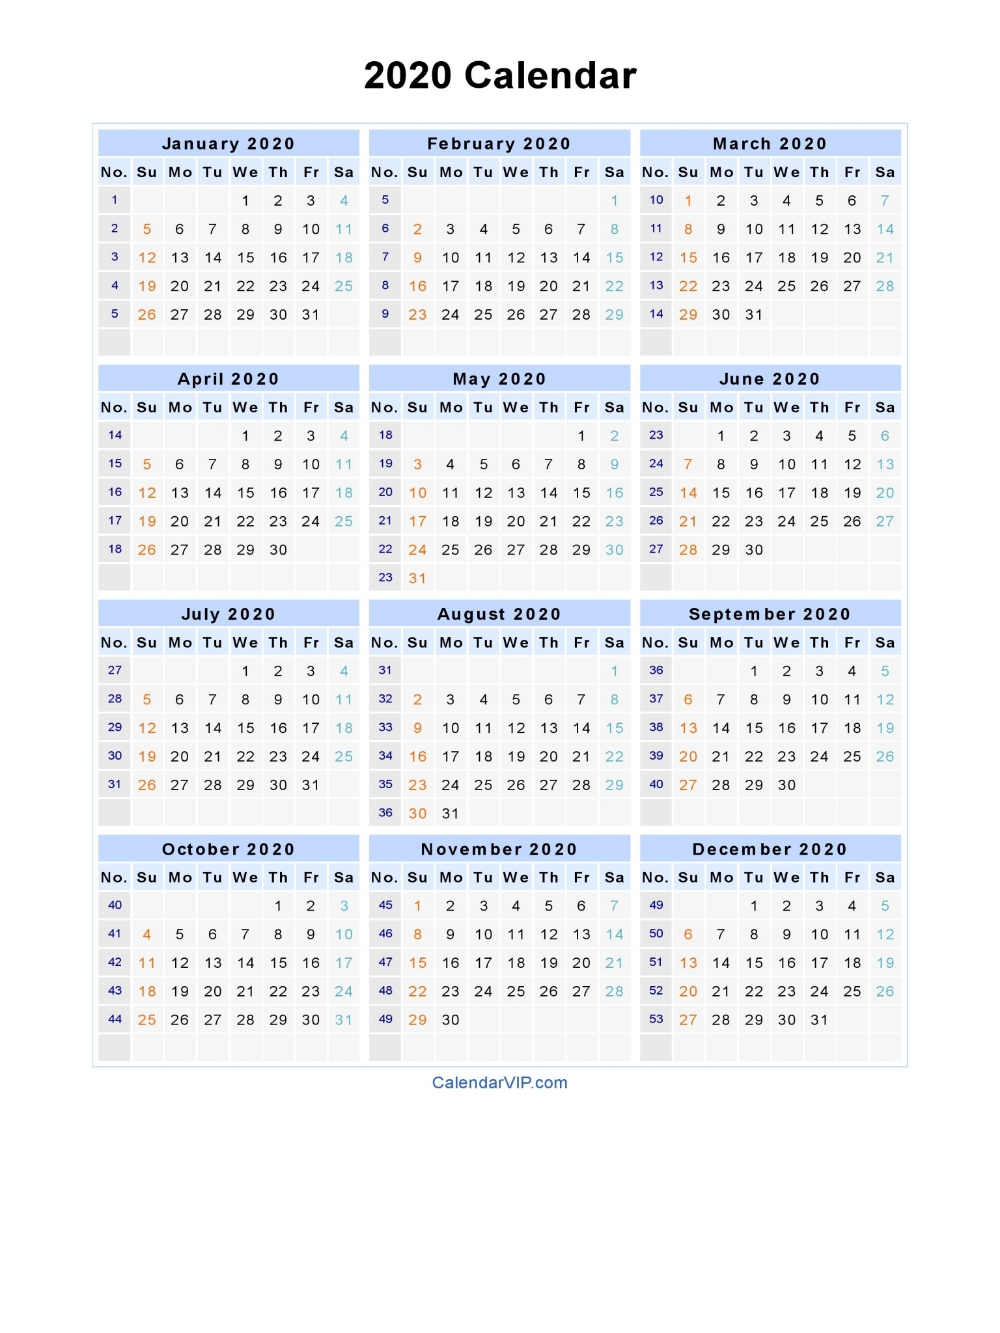 2020 Calendar - Blank Printable Calendar Template In Pdf pertaining to 2020 Monthly Calinder With Week Numbers